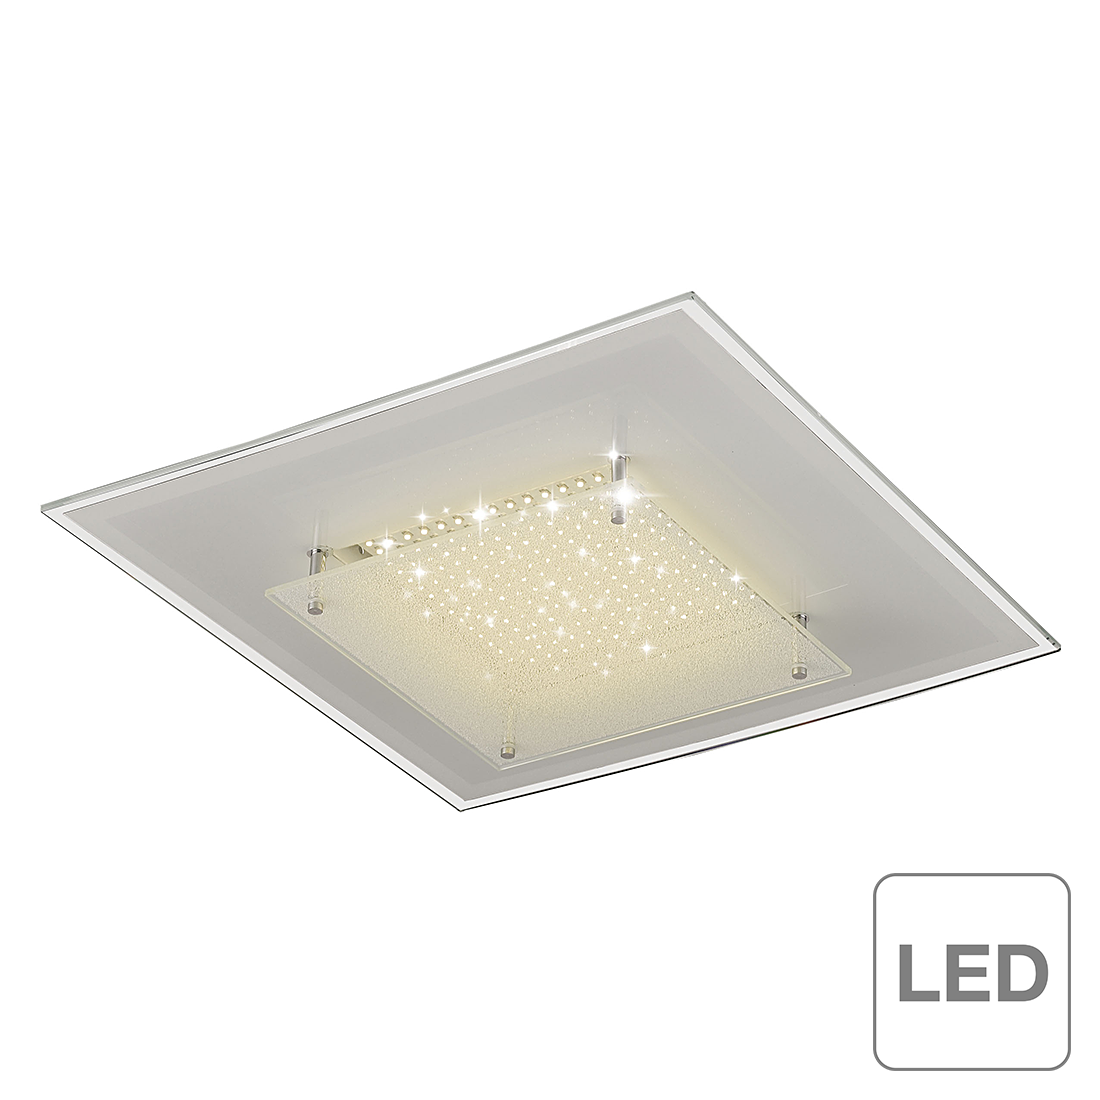 Deckenleuchte High Bright Led - 16-flammig,